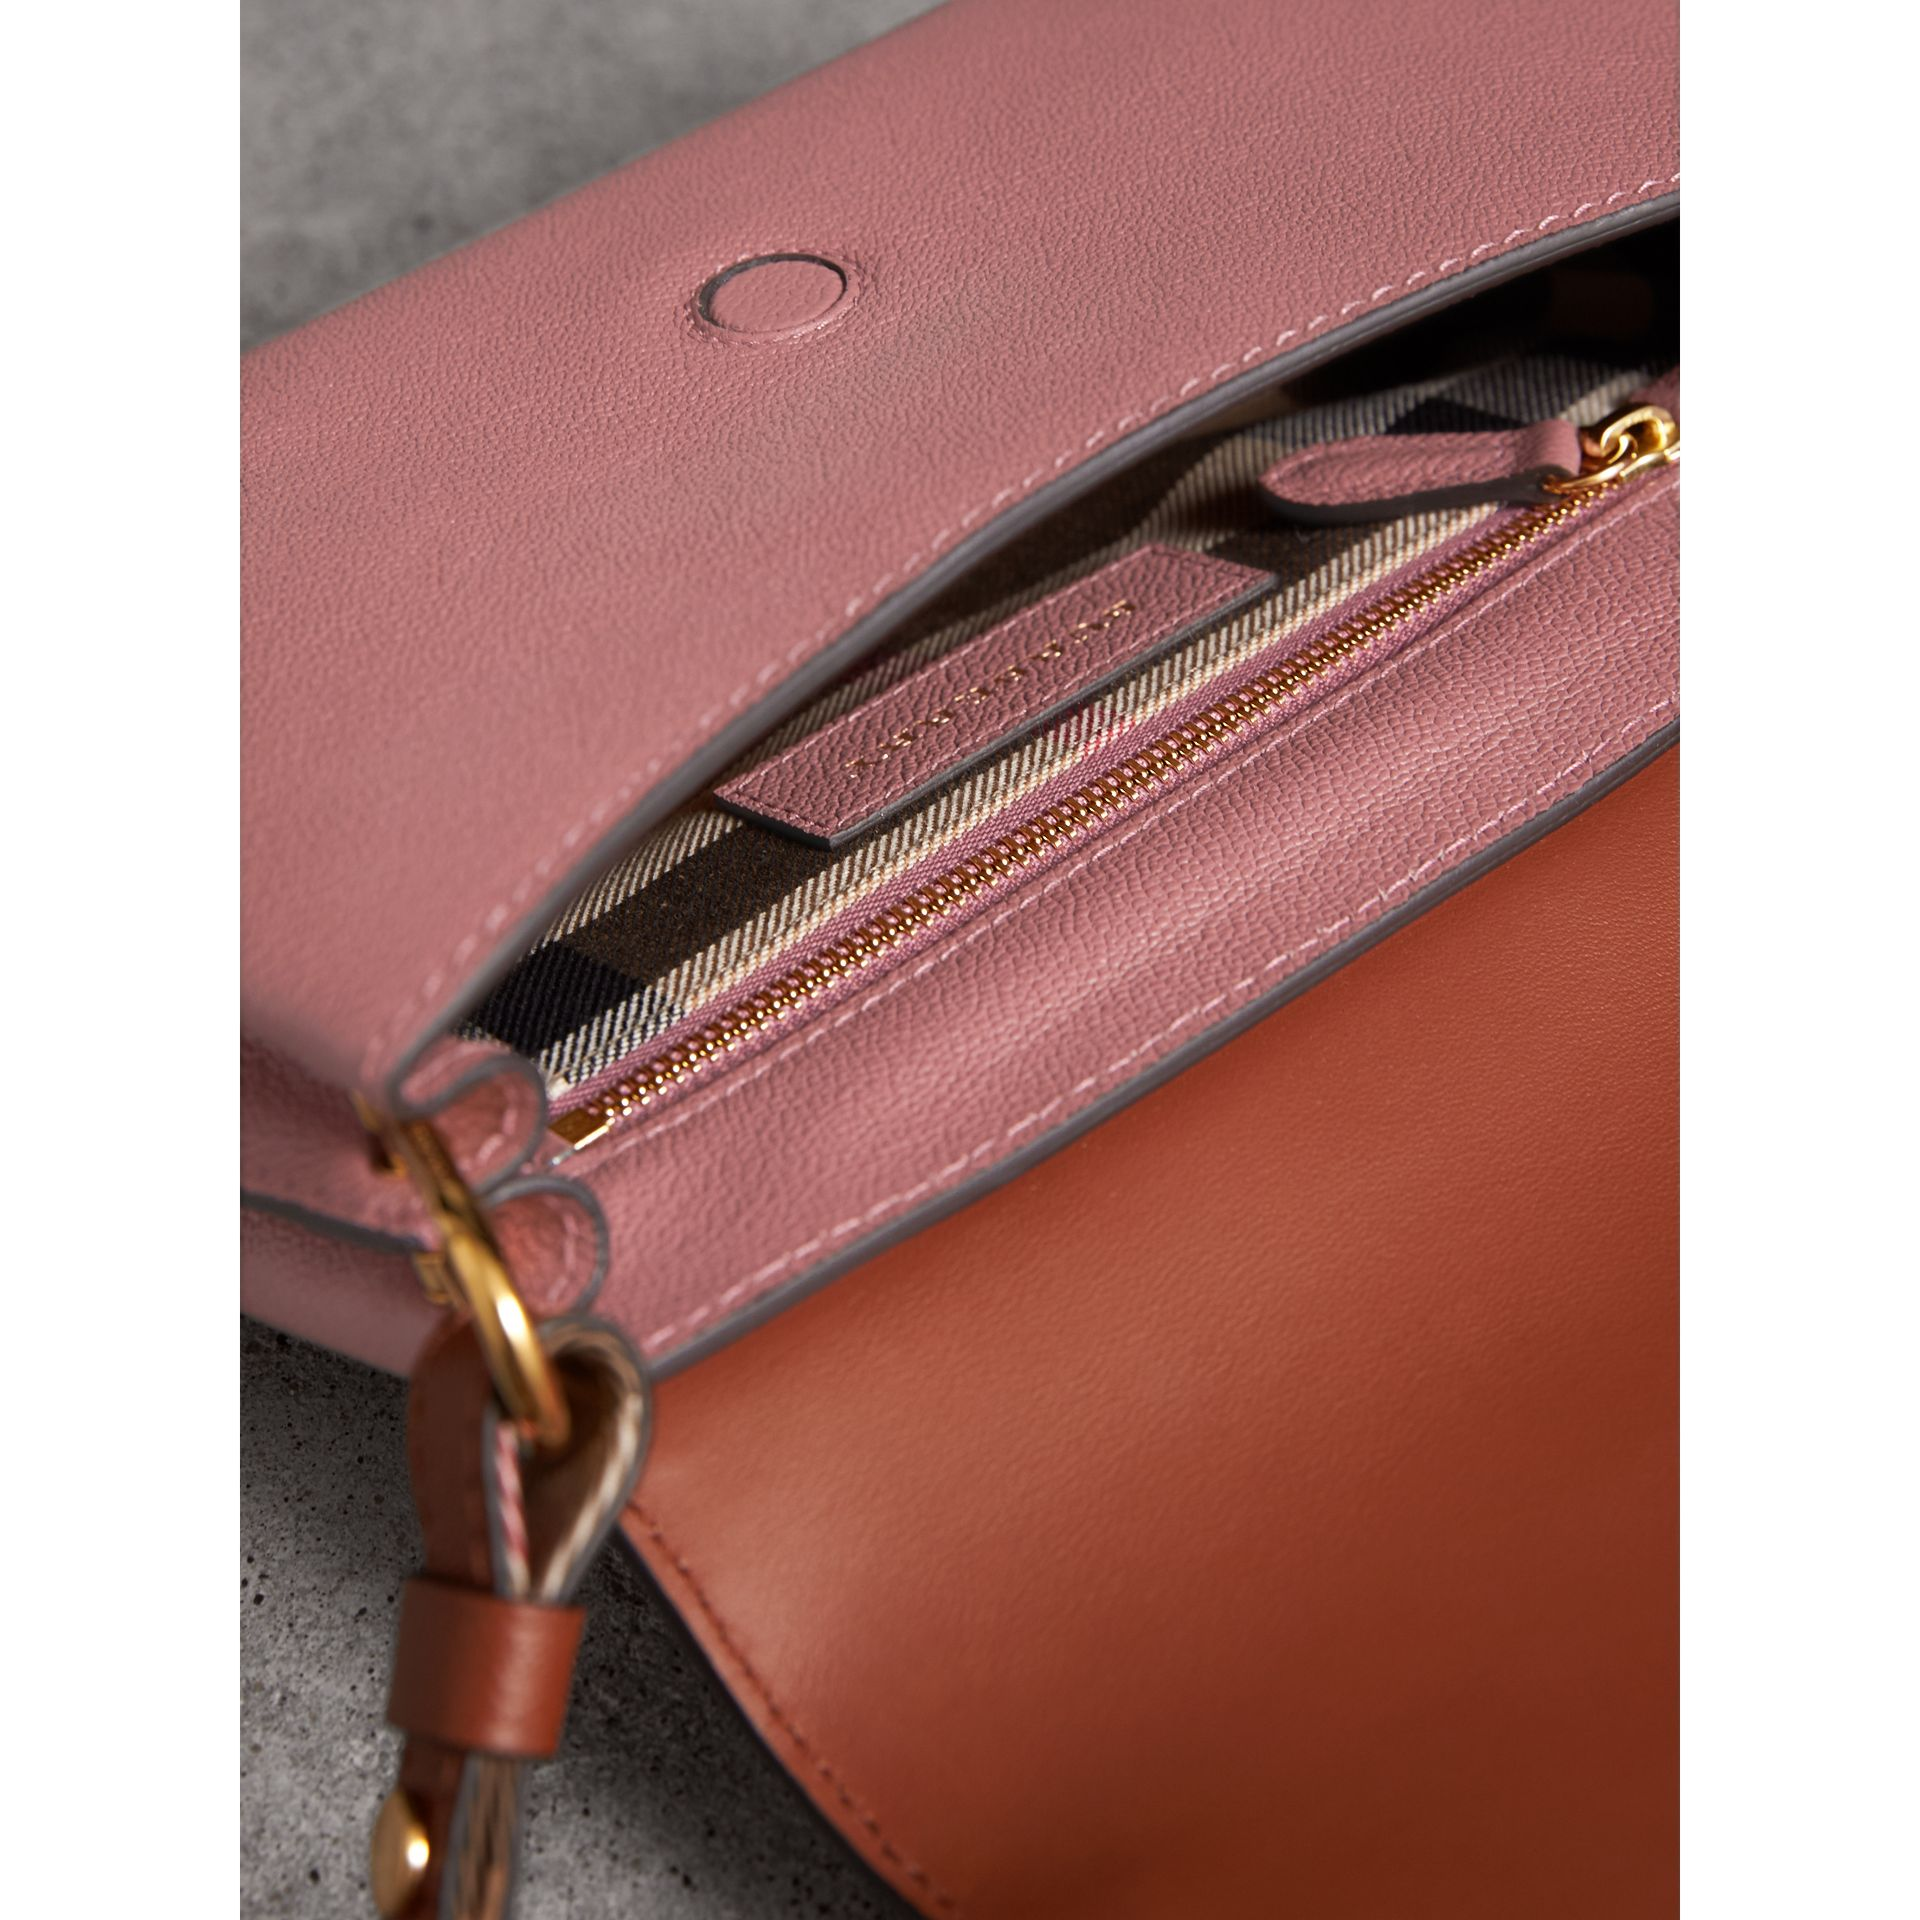 The Buckle Crossbody Bag in Trompe L'oeil Leather in Dusty Pink/bright Toffee - Women | Burberry Canada - gallery image 5